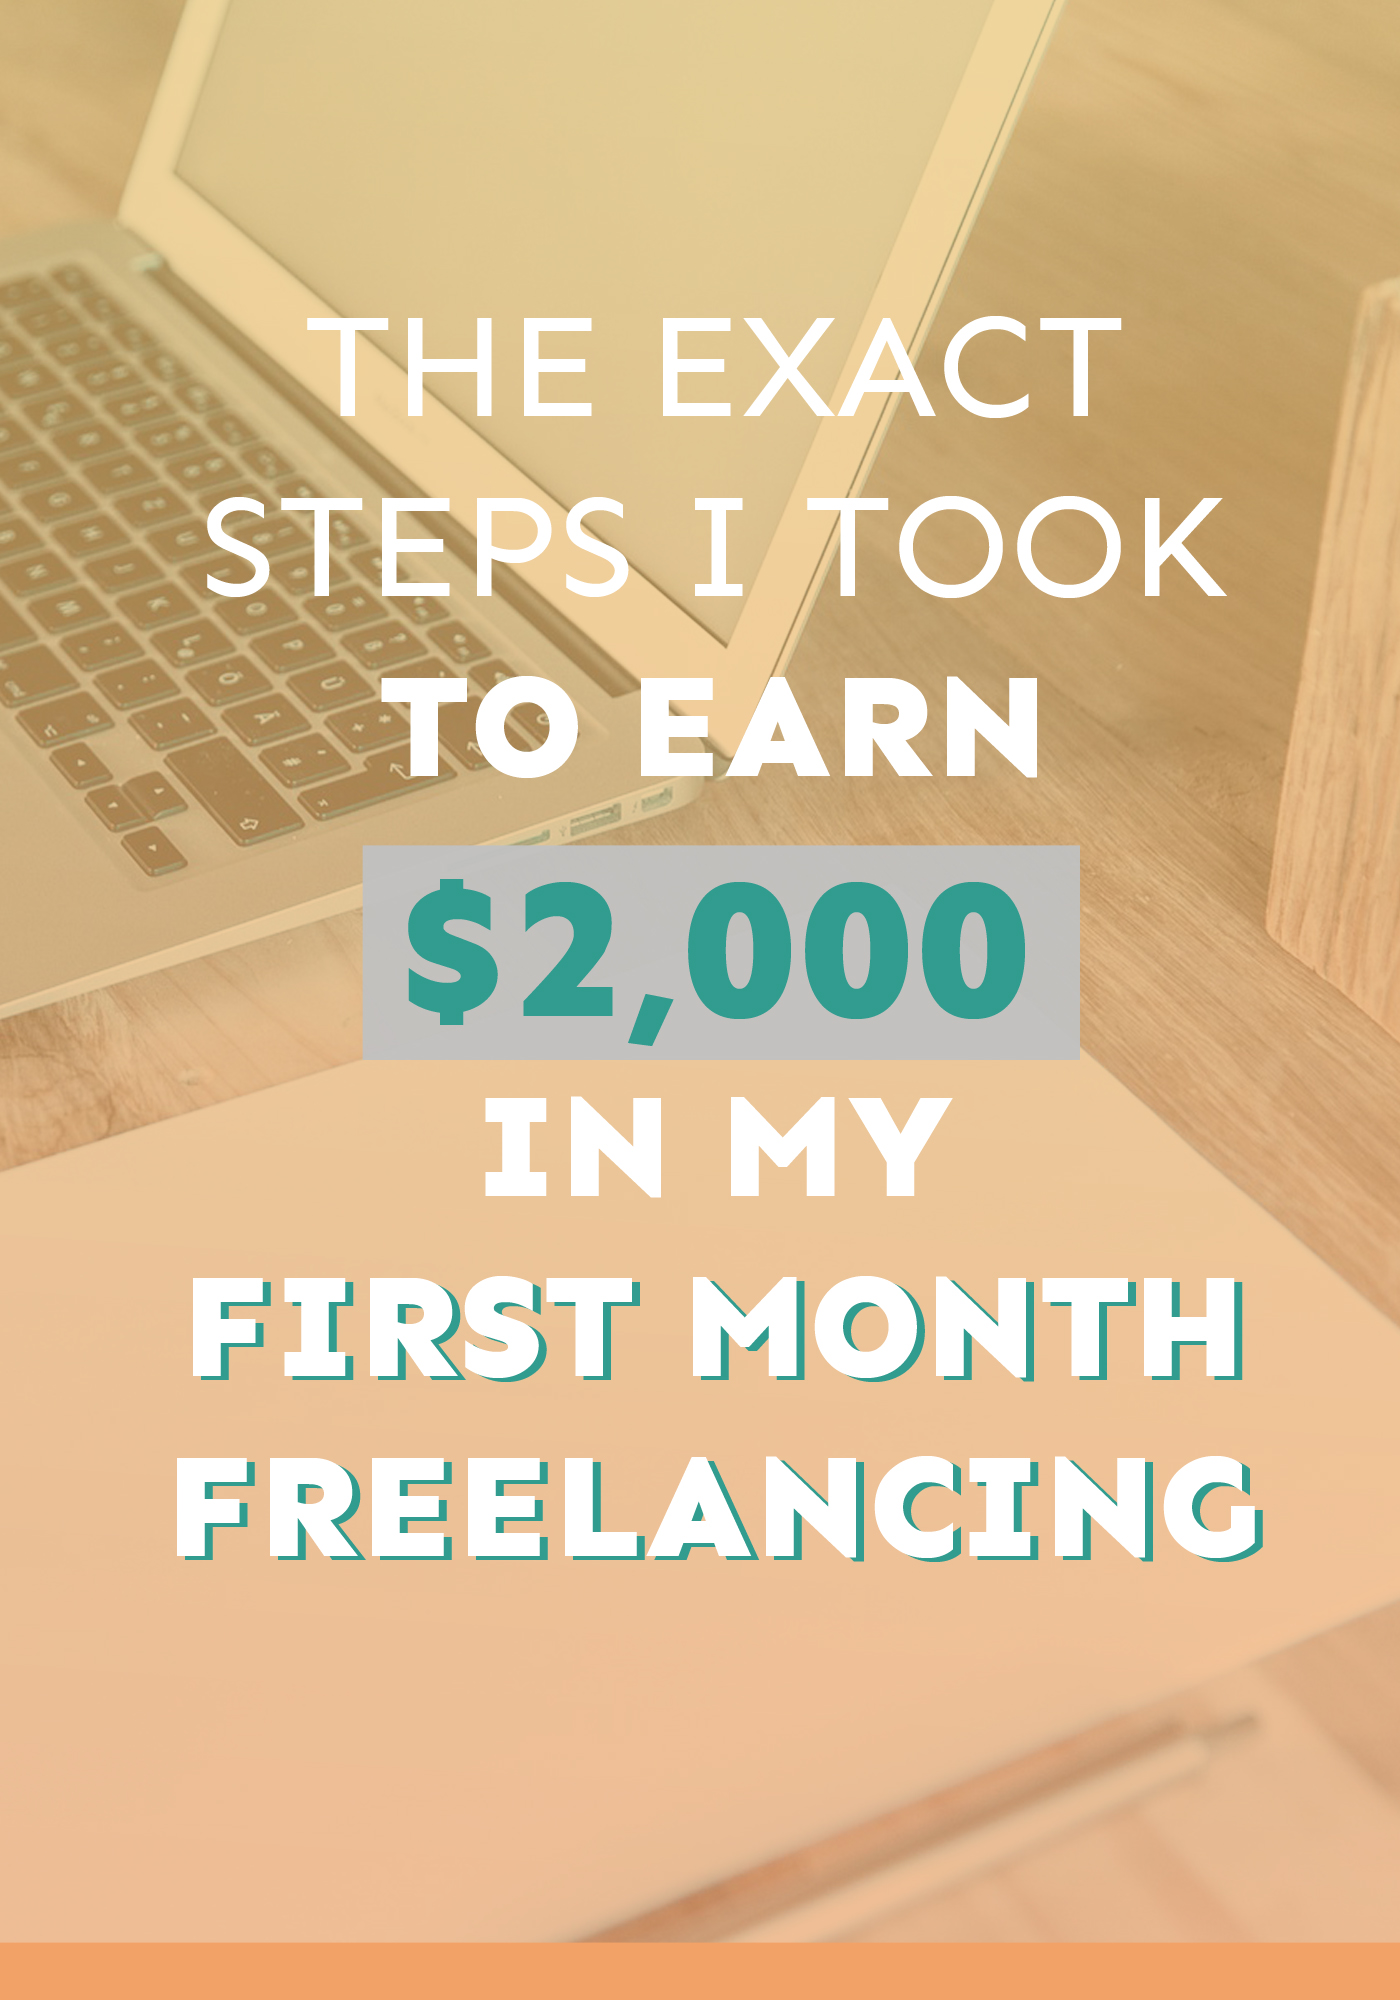 Want to know how I learnt $2,000 in my VERY FIRST month freelancing? I go through it step by step!